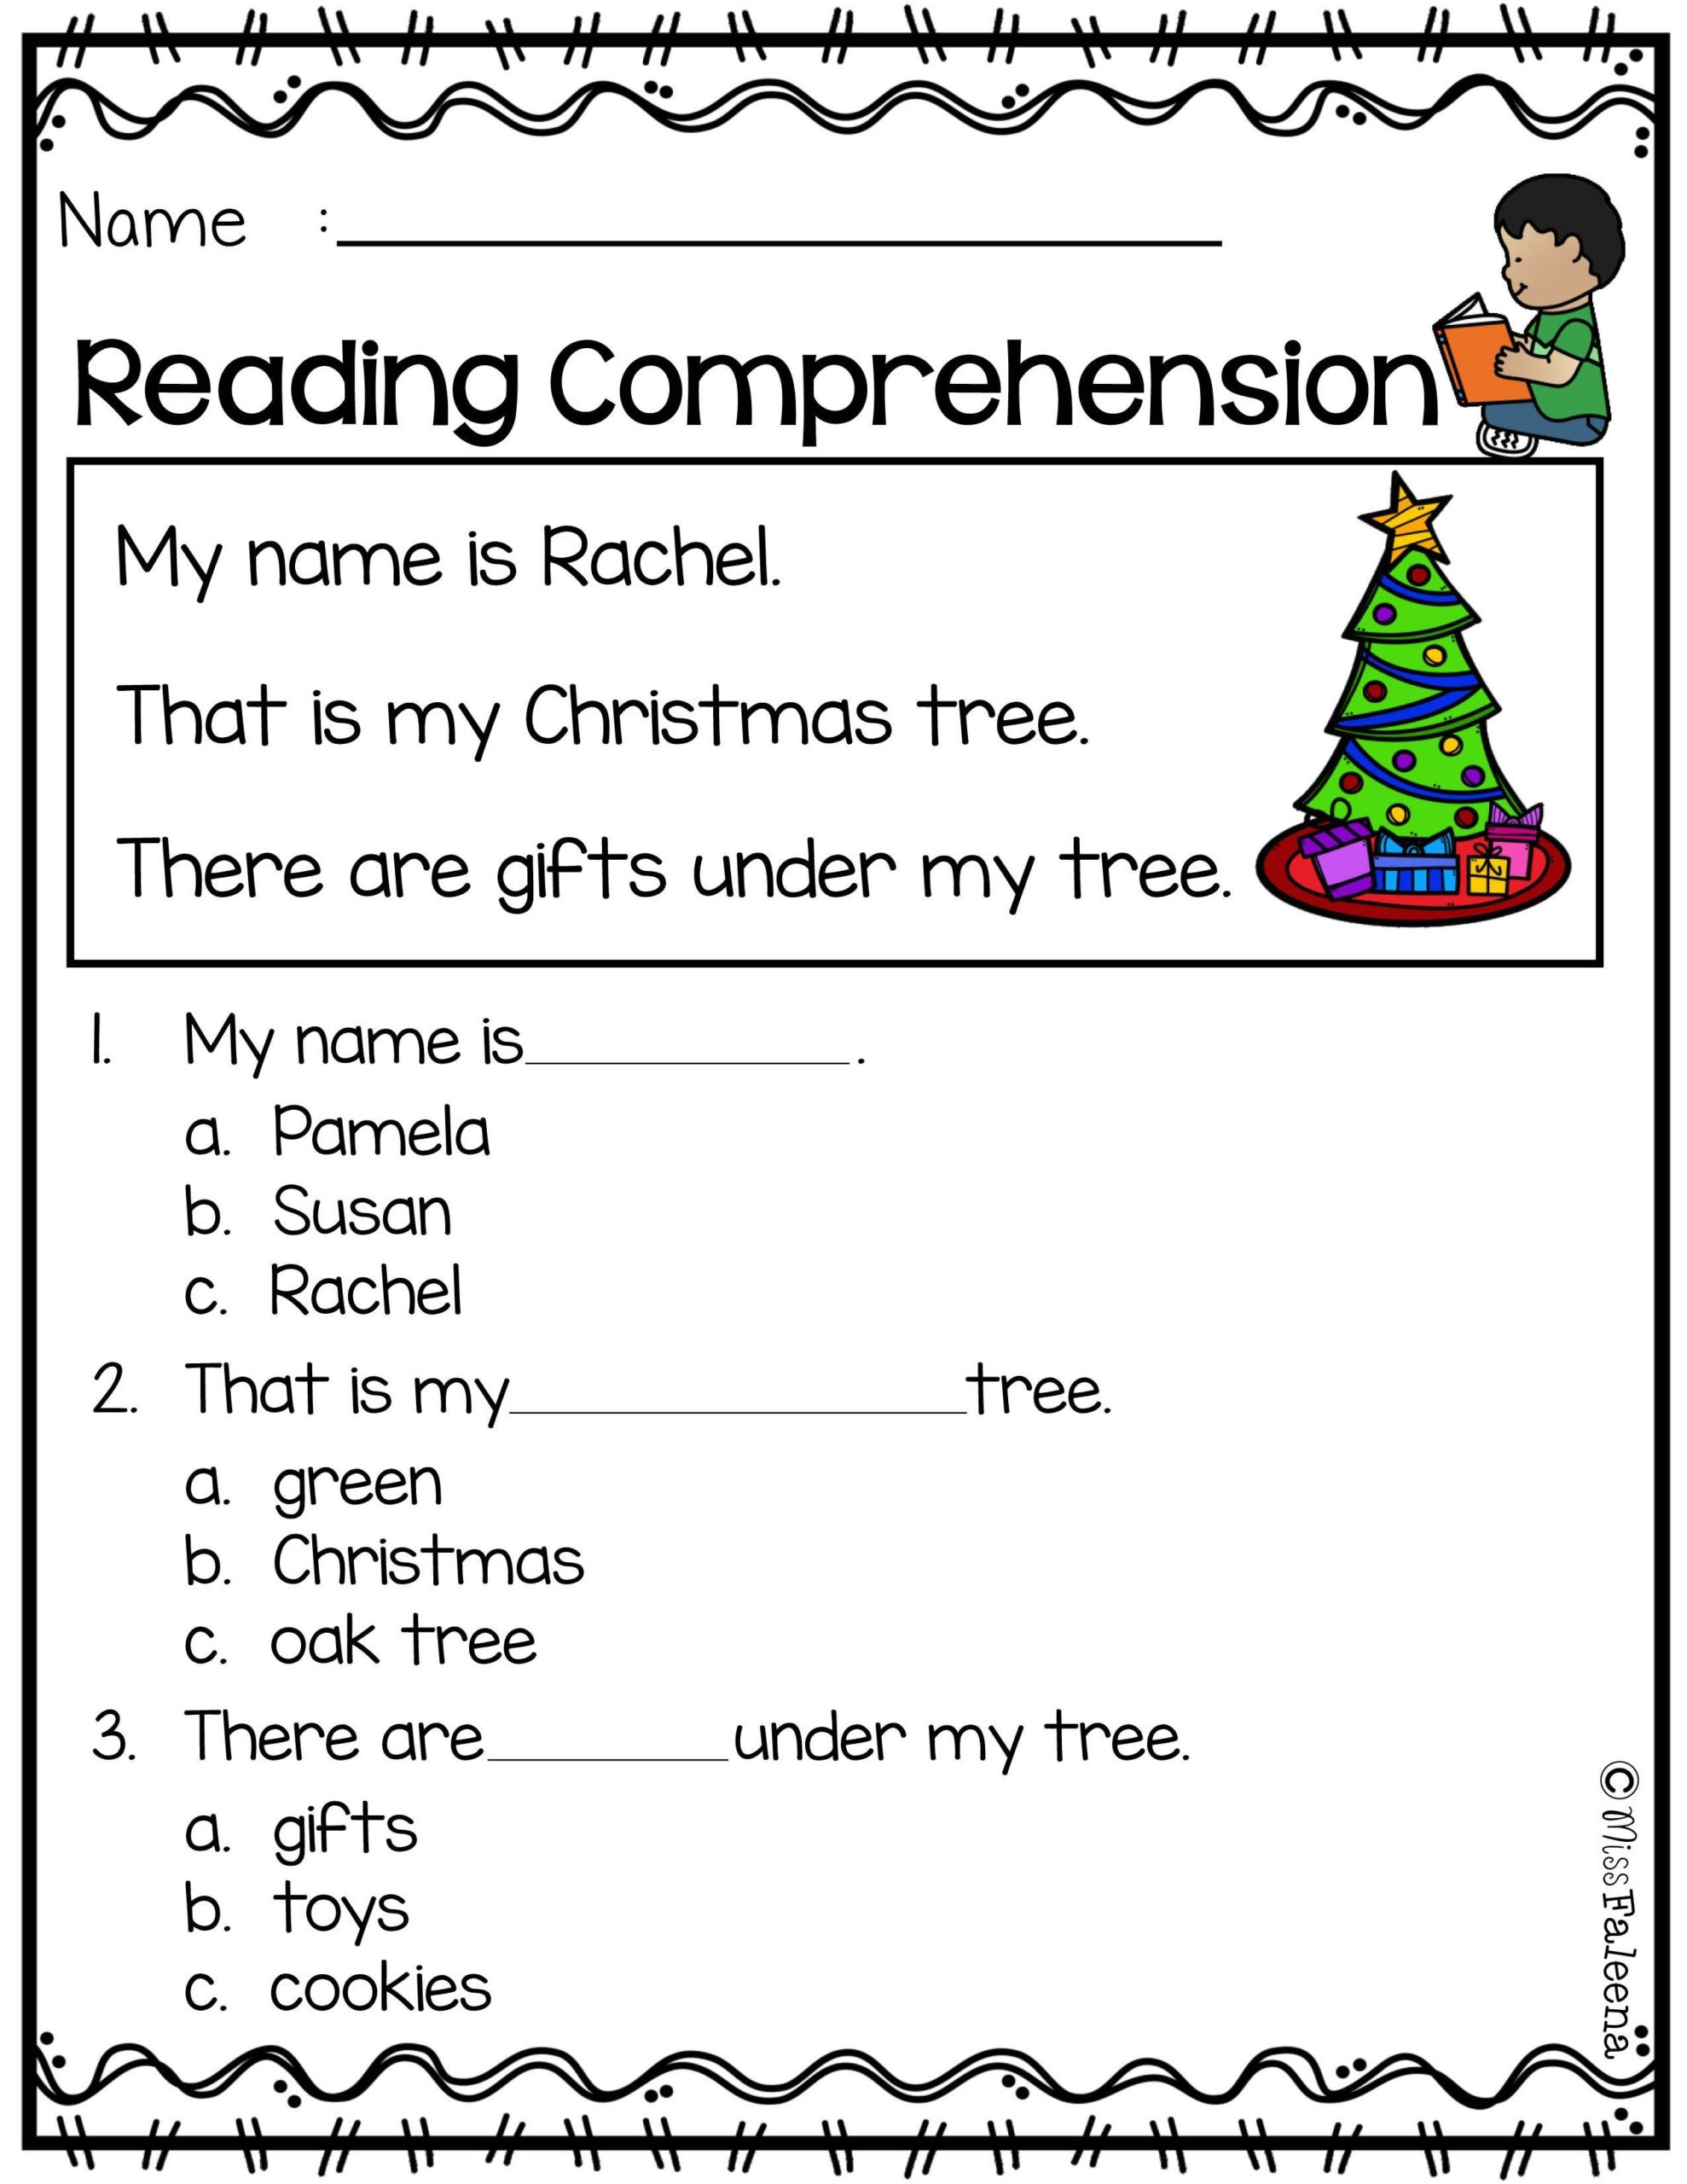 3rd Grade Christmas Worksheets Math Worksheet Third Grade Readingsion Worksheets 3rd